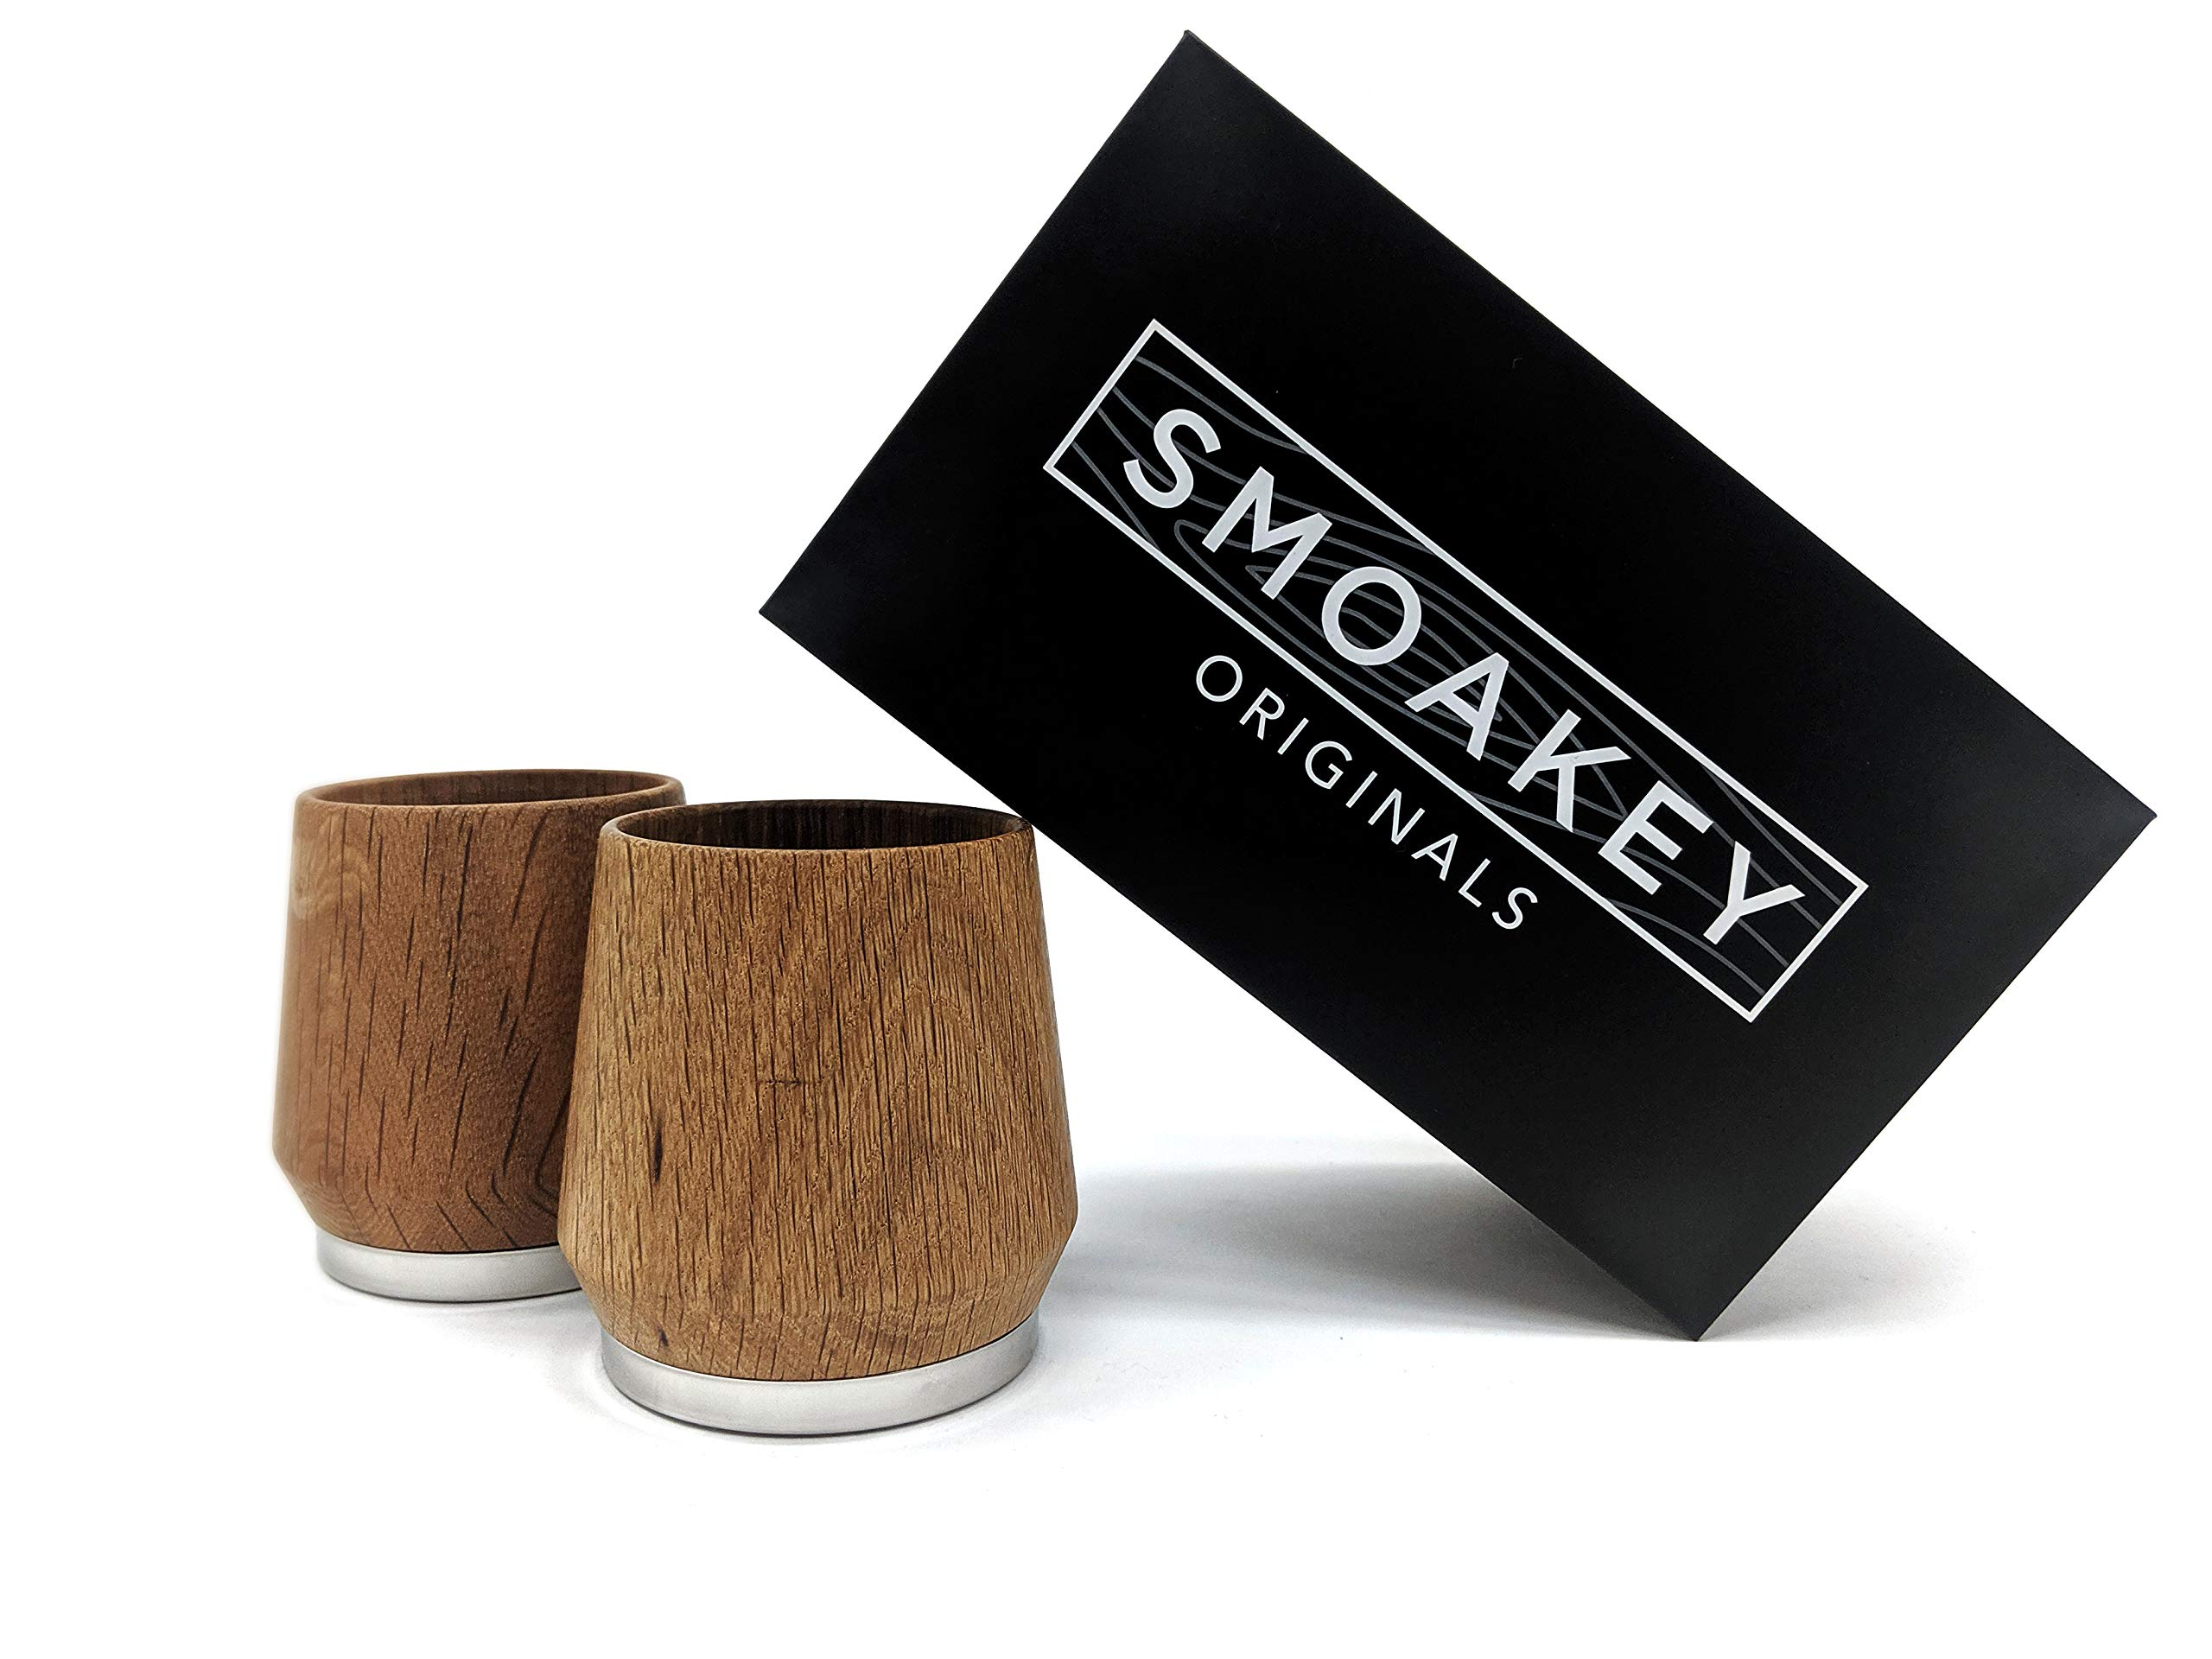 Smoakey Originals Premium White Oak Wood Whiskey Cups Sealed With A Natural Wax Oil Finish And Stainless Steel Base, Set of 2 Glasses